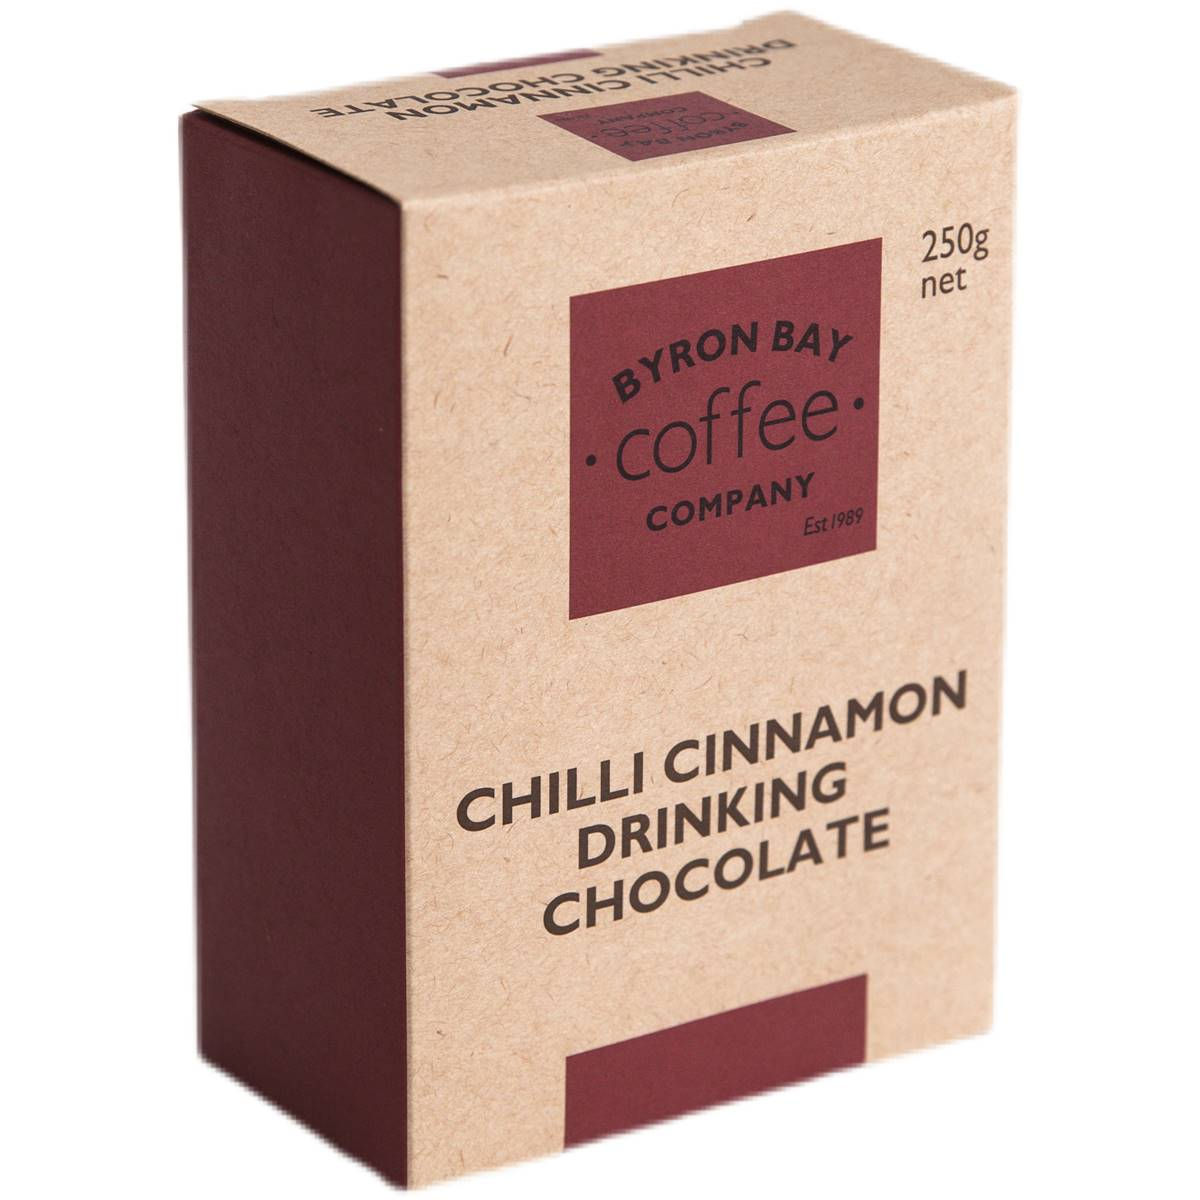 Byron Bay Coffee Co. Gourmet Drinking Chocolate With Chilli Cinnamon